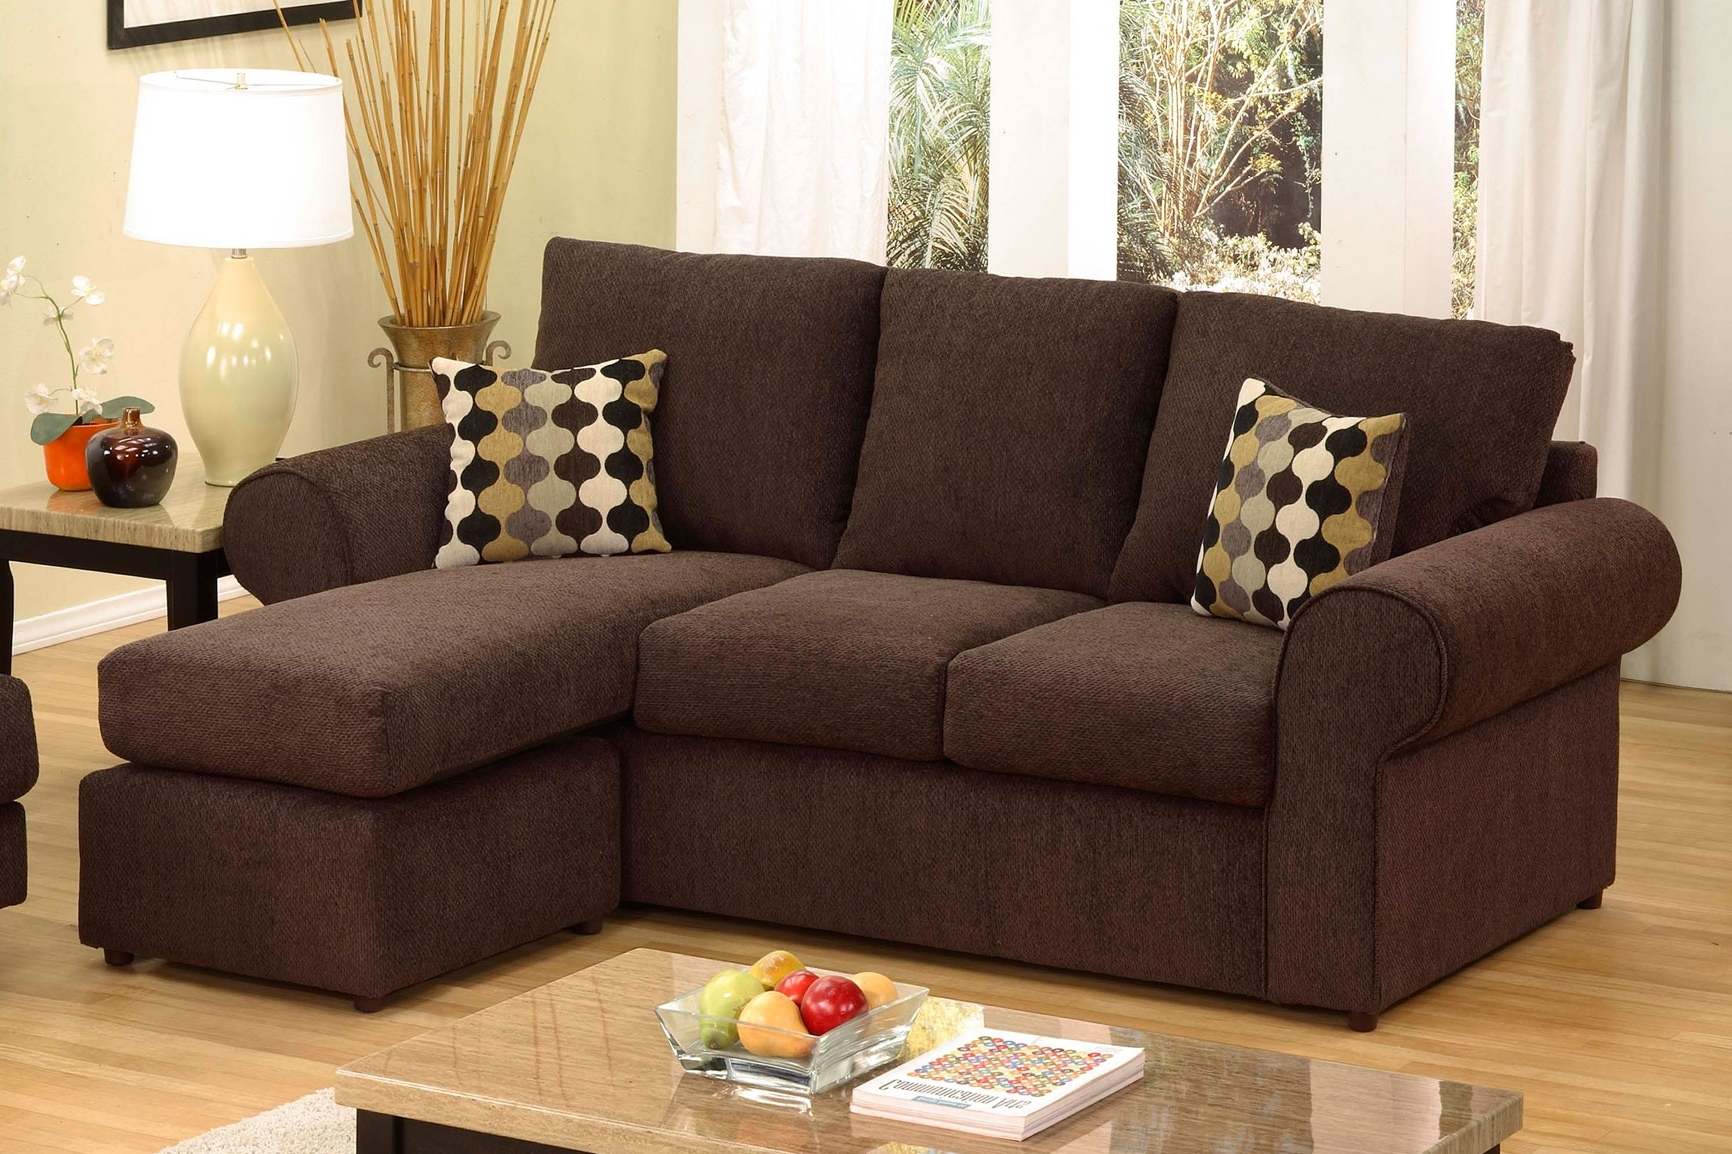 Widely Used Tallahassee Sectional Sofas In Furniture: Harbor Freight Furniture (View 4 of 20)